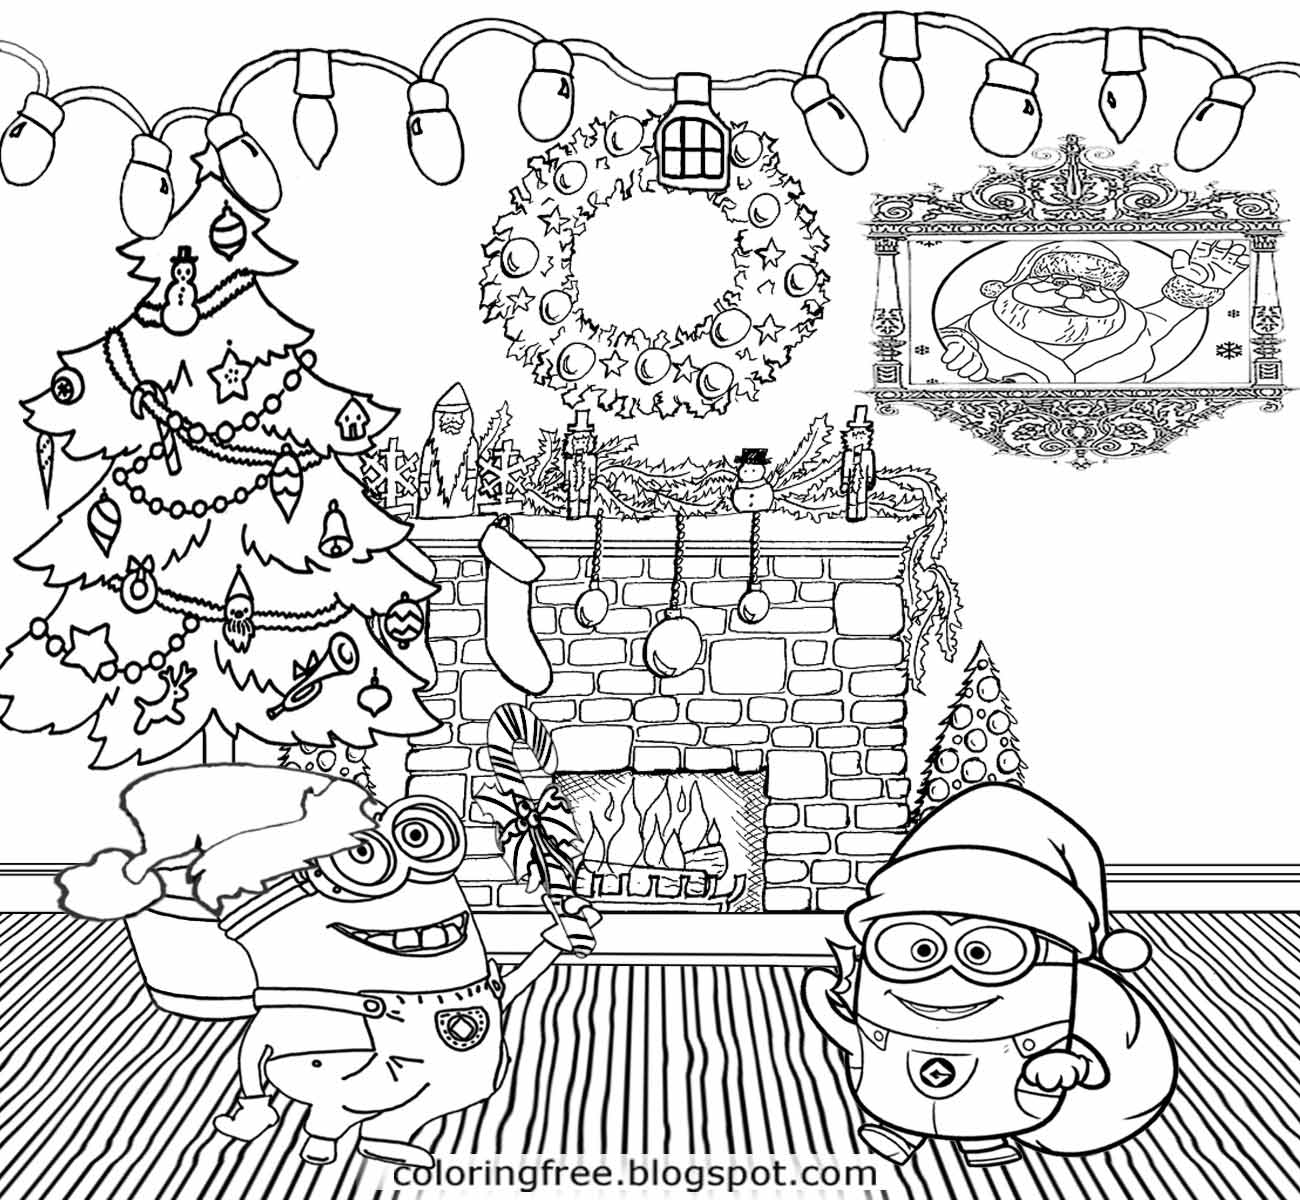 1300x1200 Free Coloring Pages Printable Pictures To Color Kids Drawing Ideas